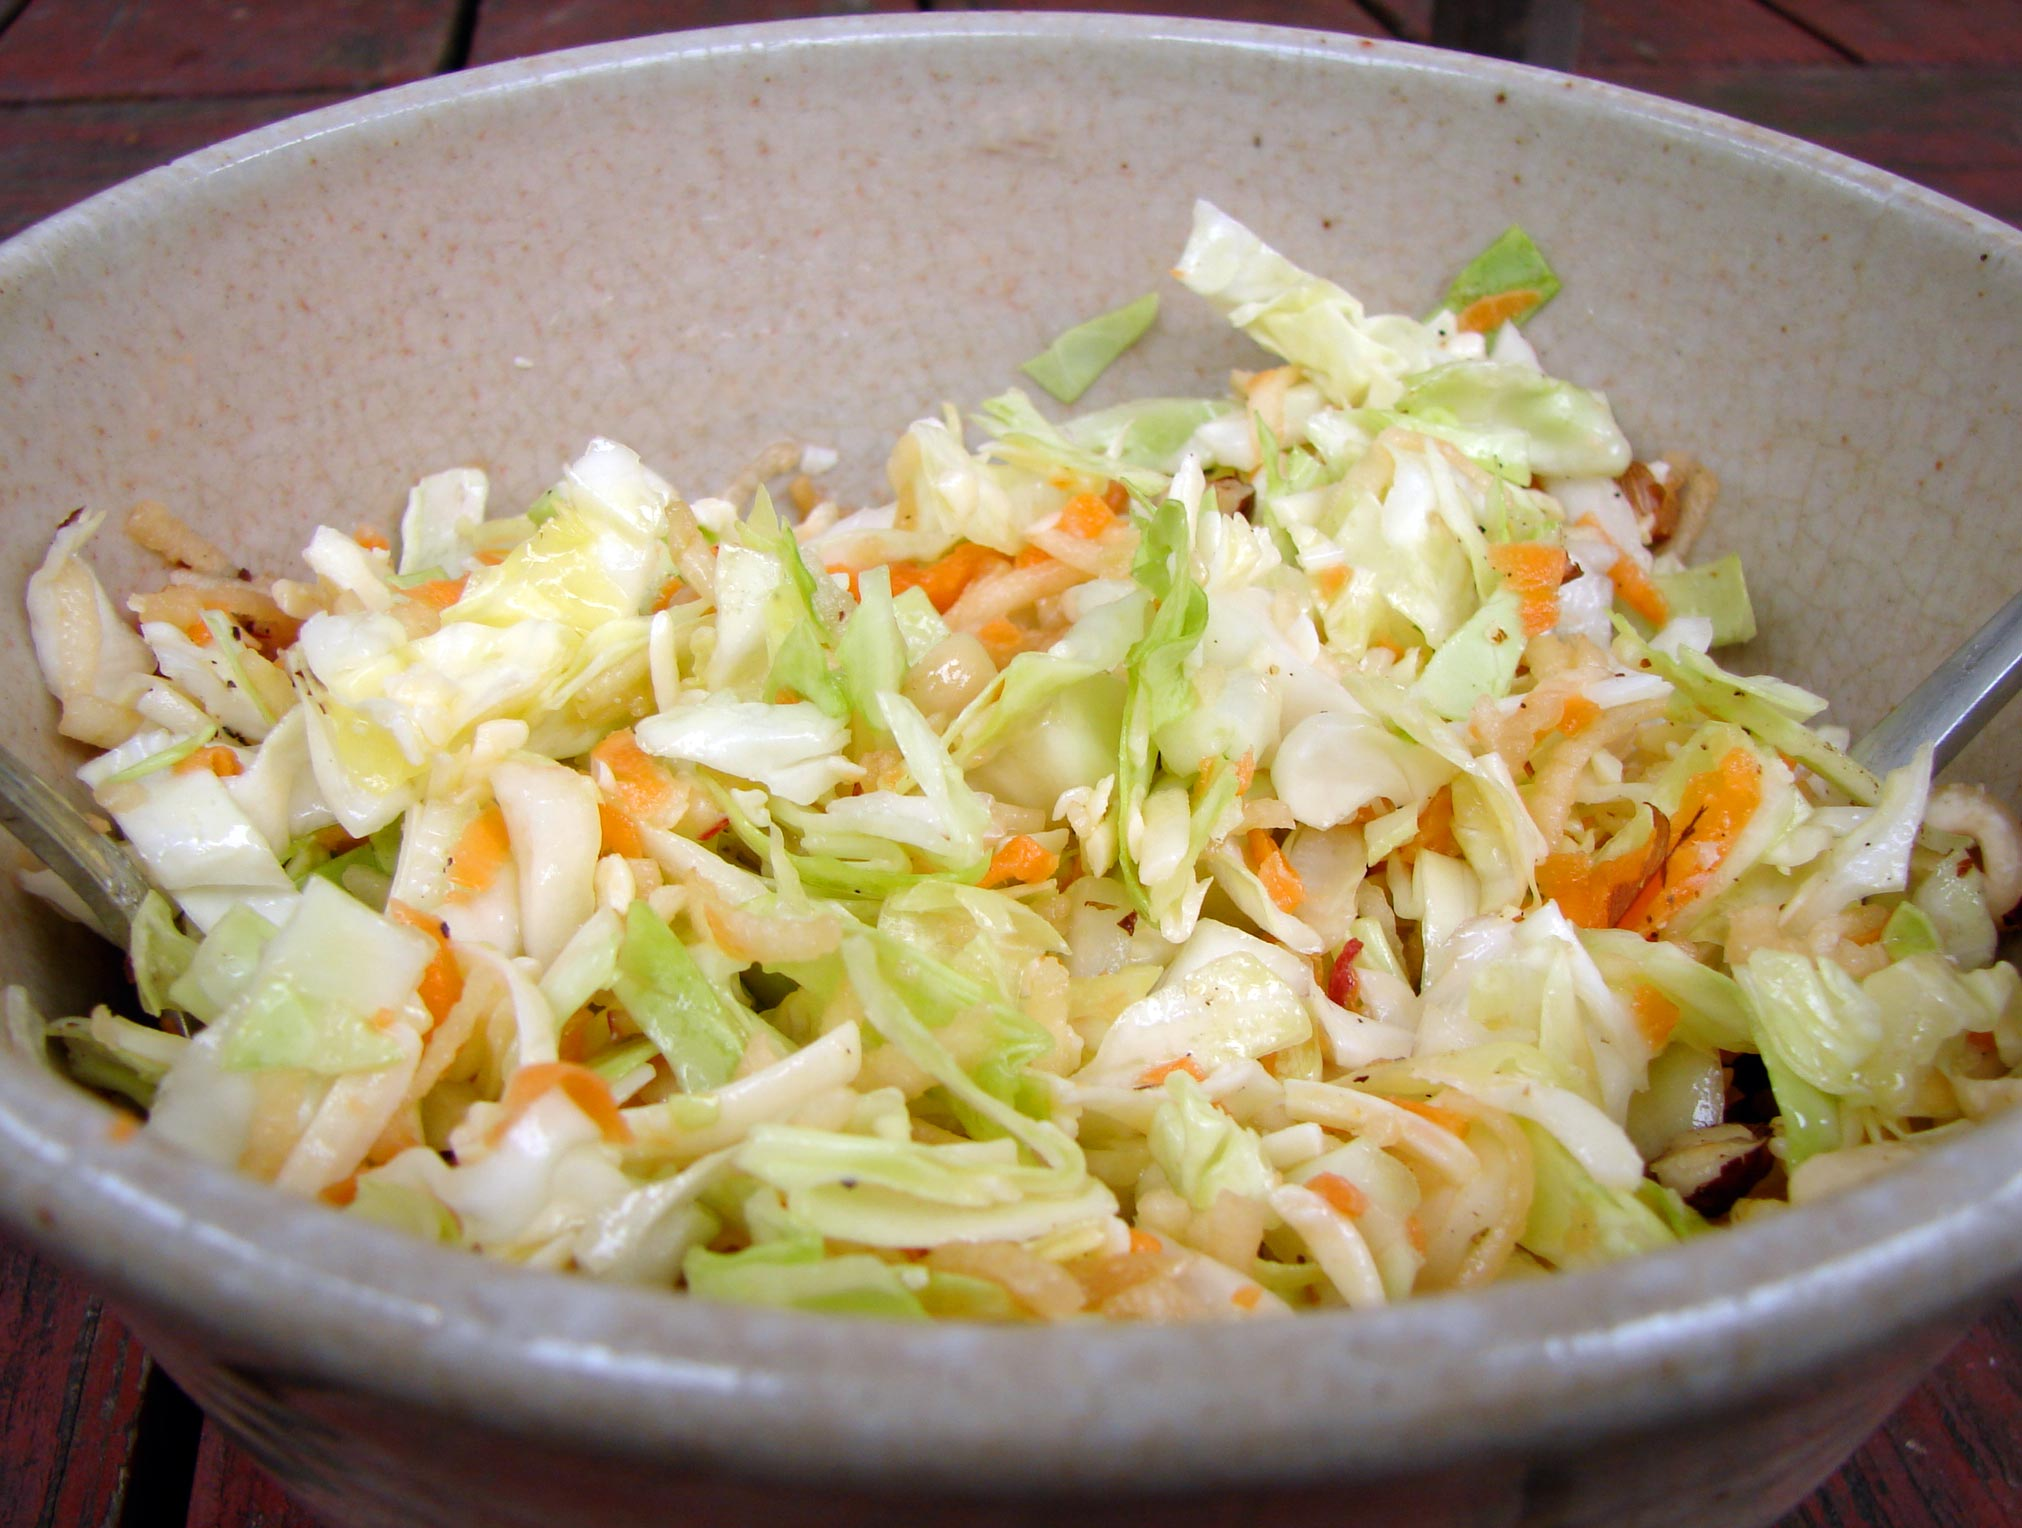 coleslaw asian inspired coleslaw spicy lime coleslaw pulled pork ...